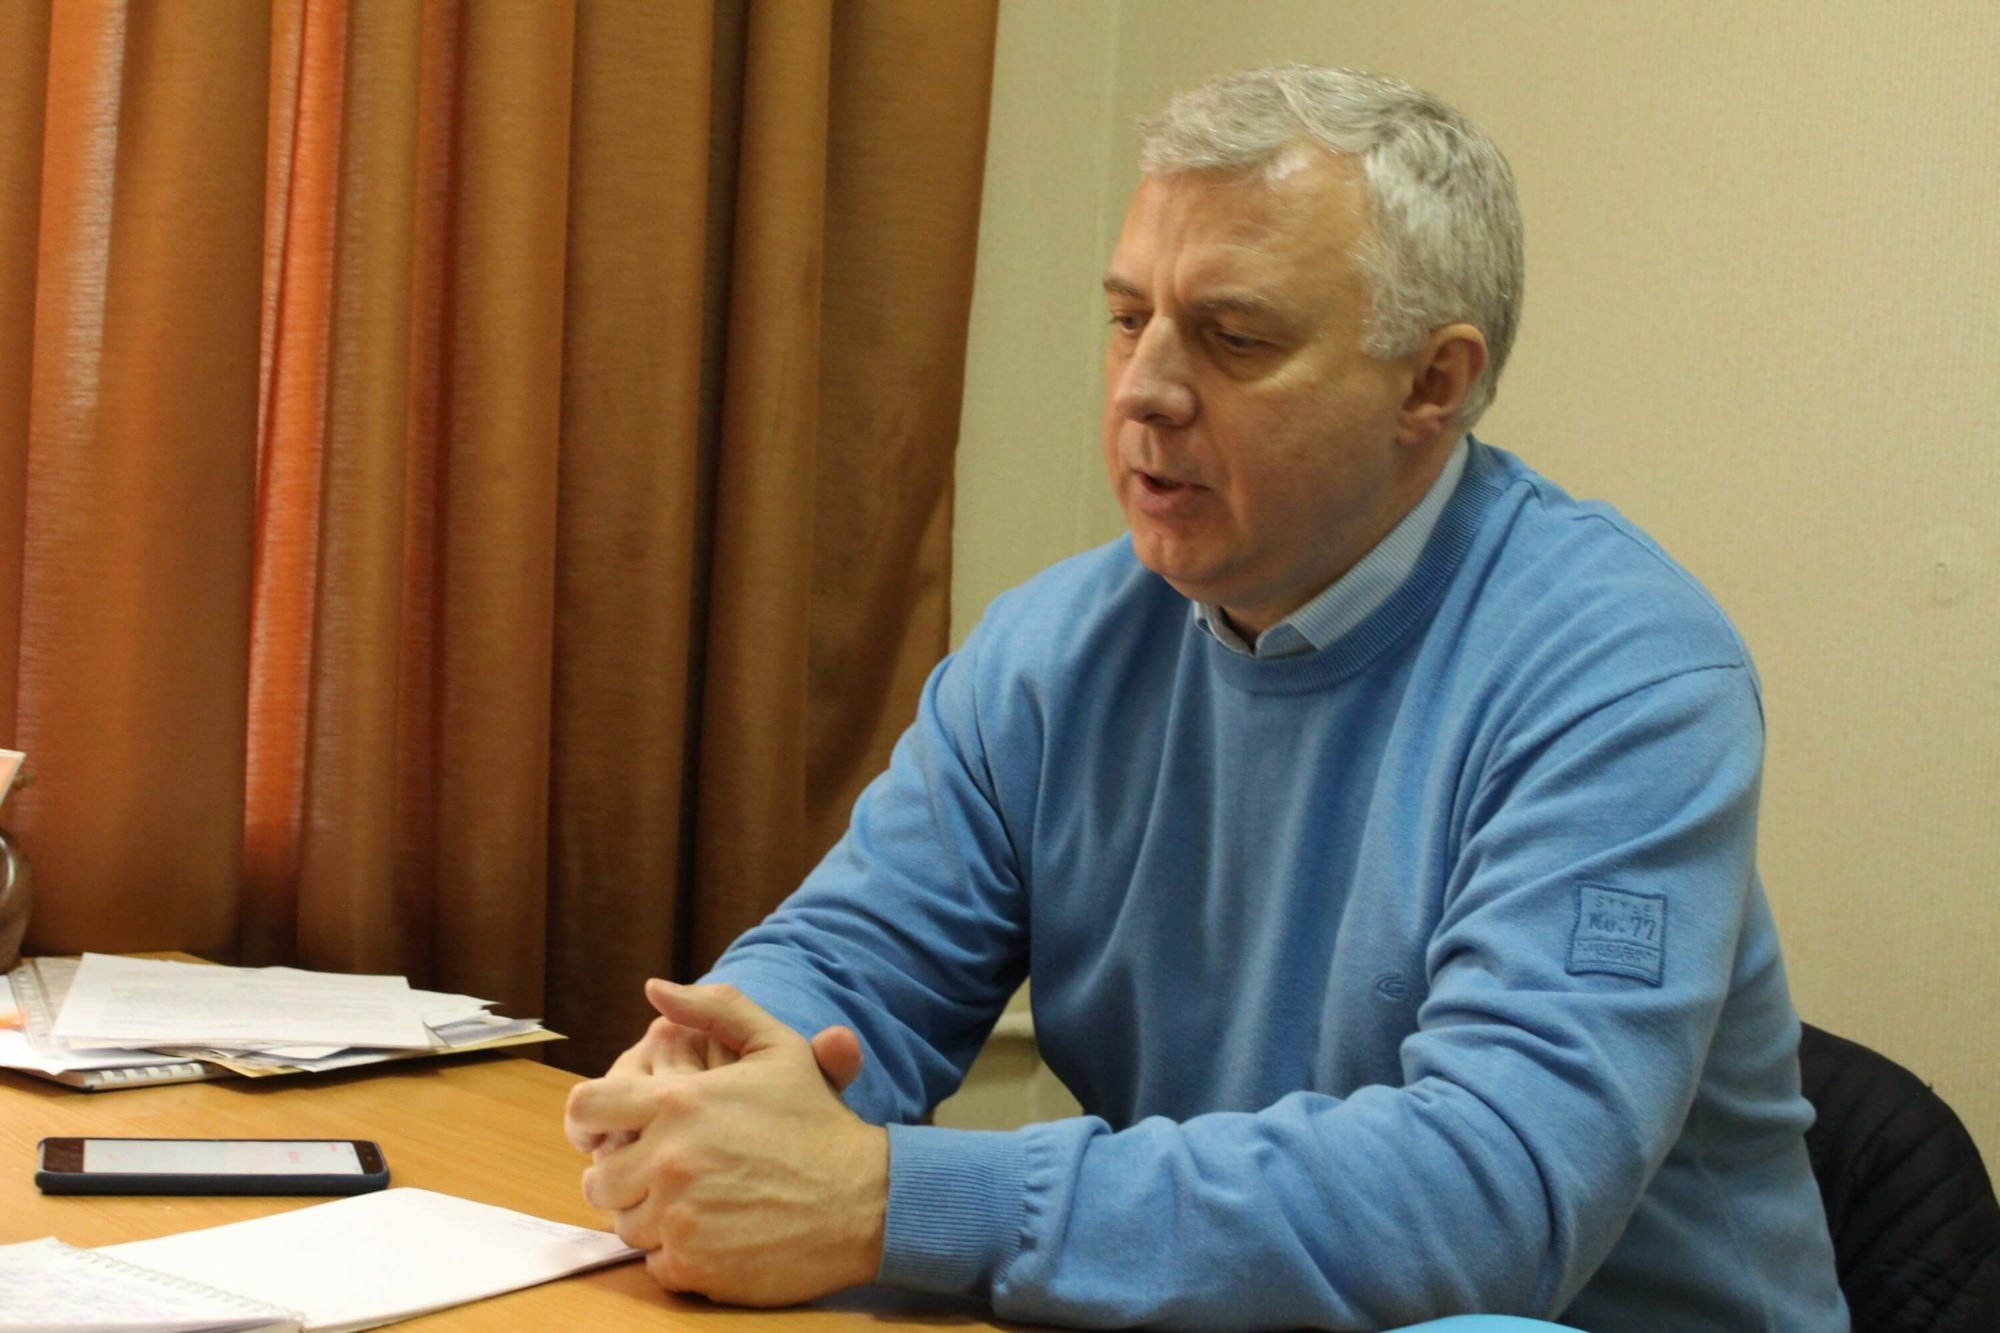 Opinion: Chairman of the National Agency for Higher Education Quality Assurance, Serhii Kvit on the objectives of the NAHEQA, combating plagiarism and financial autonomy for universities